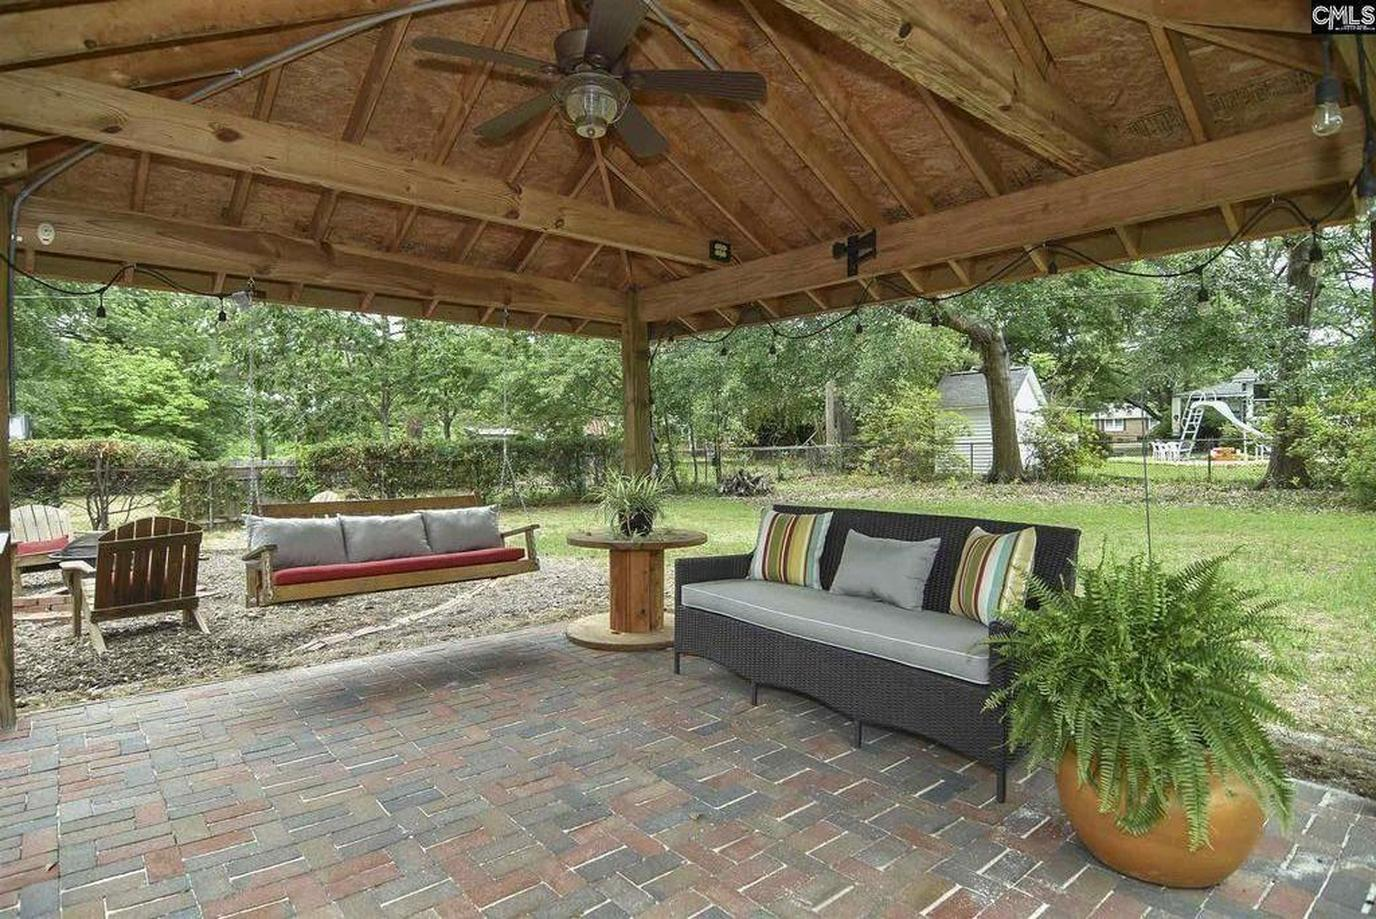 Covered Porch at a Pet-Friendly Vacation Rental Near Congaree National Park.